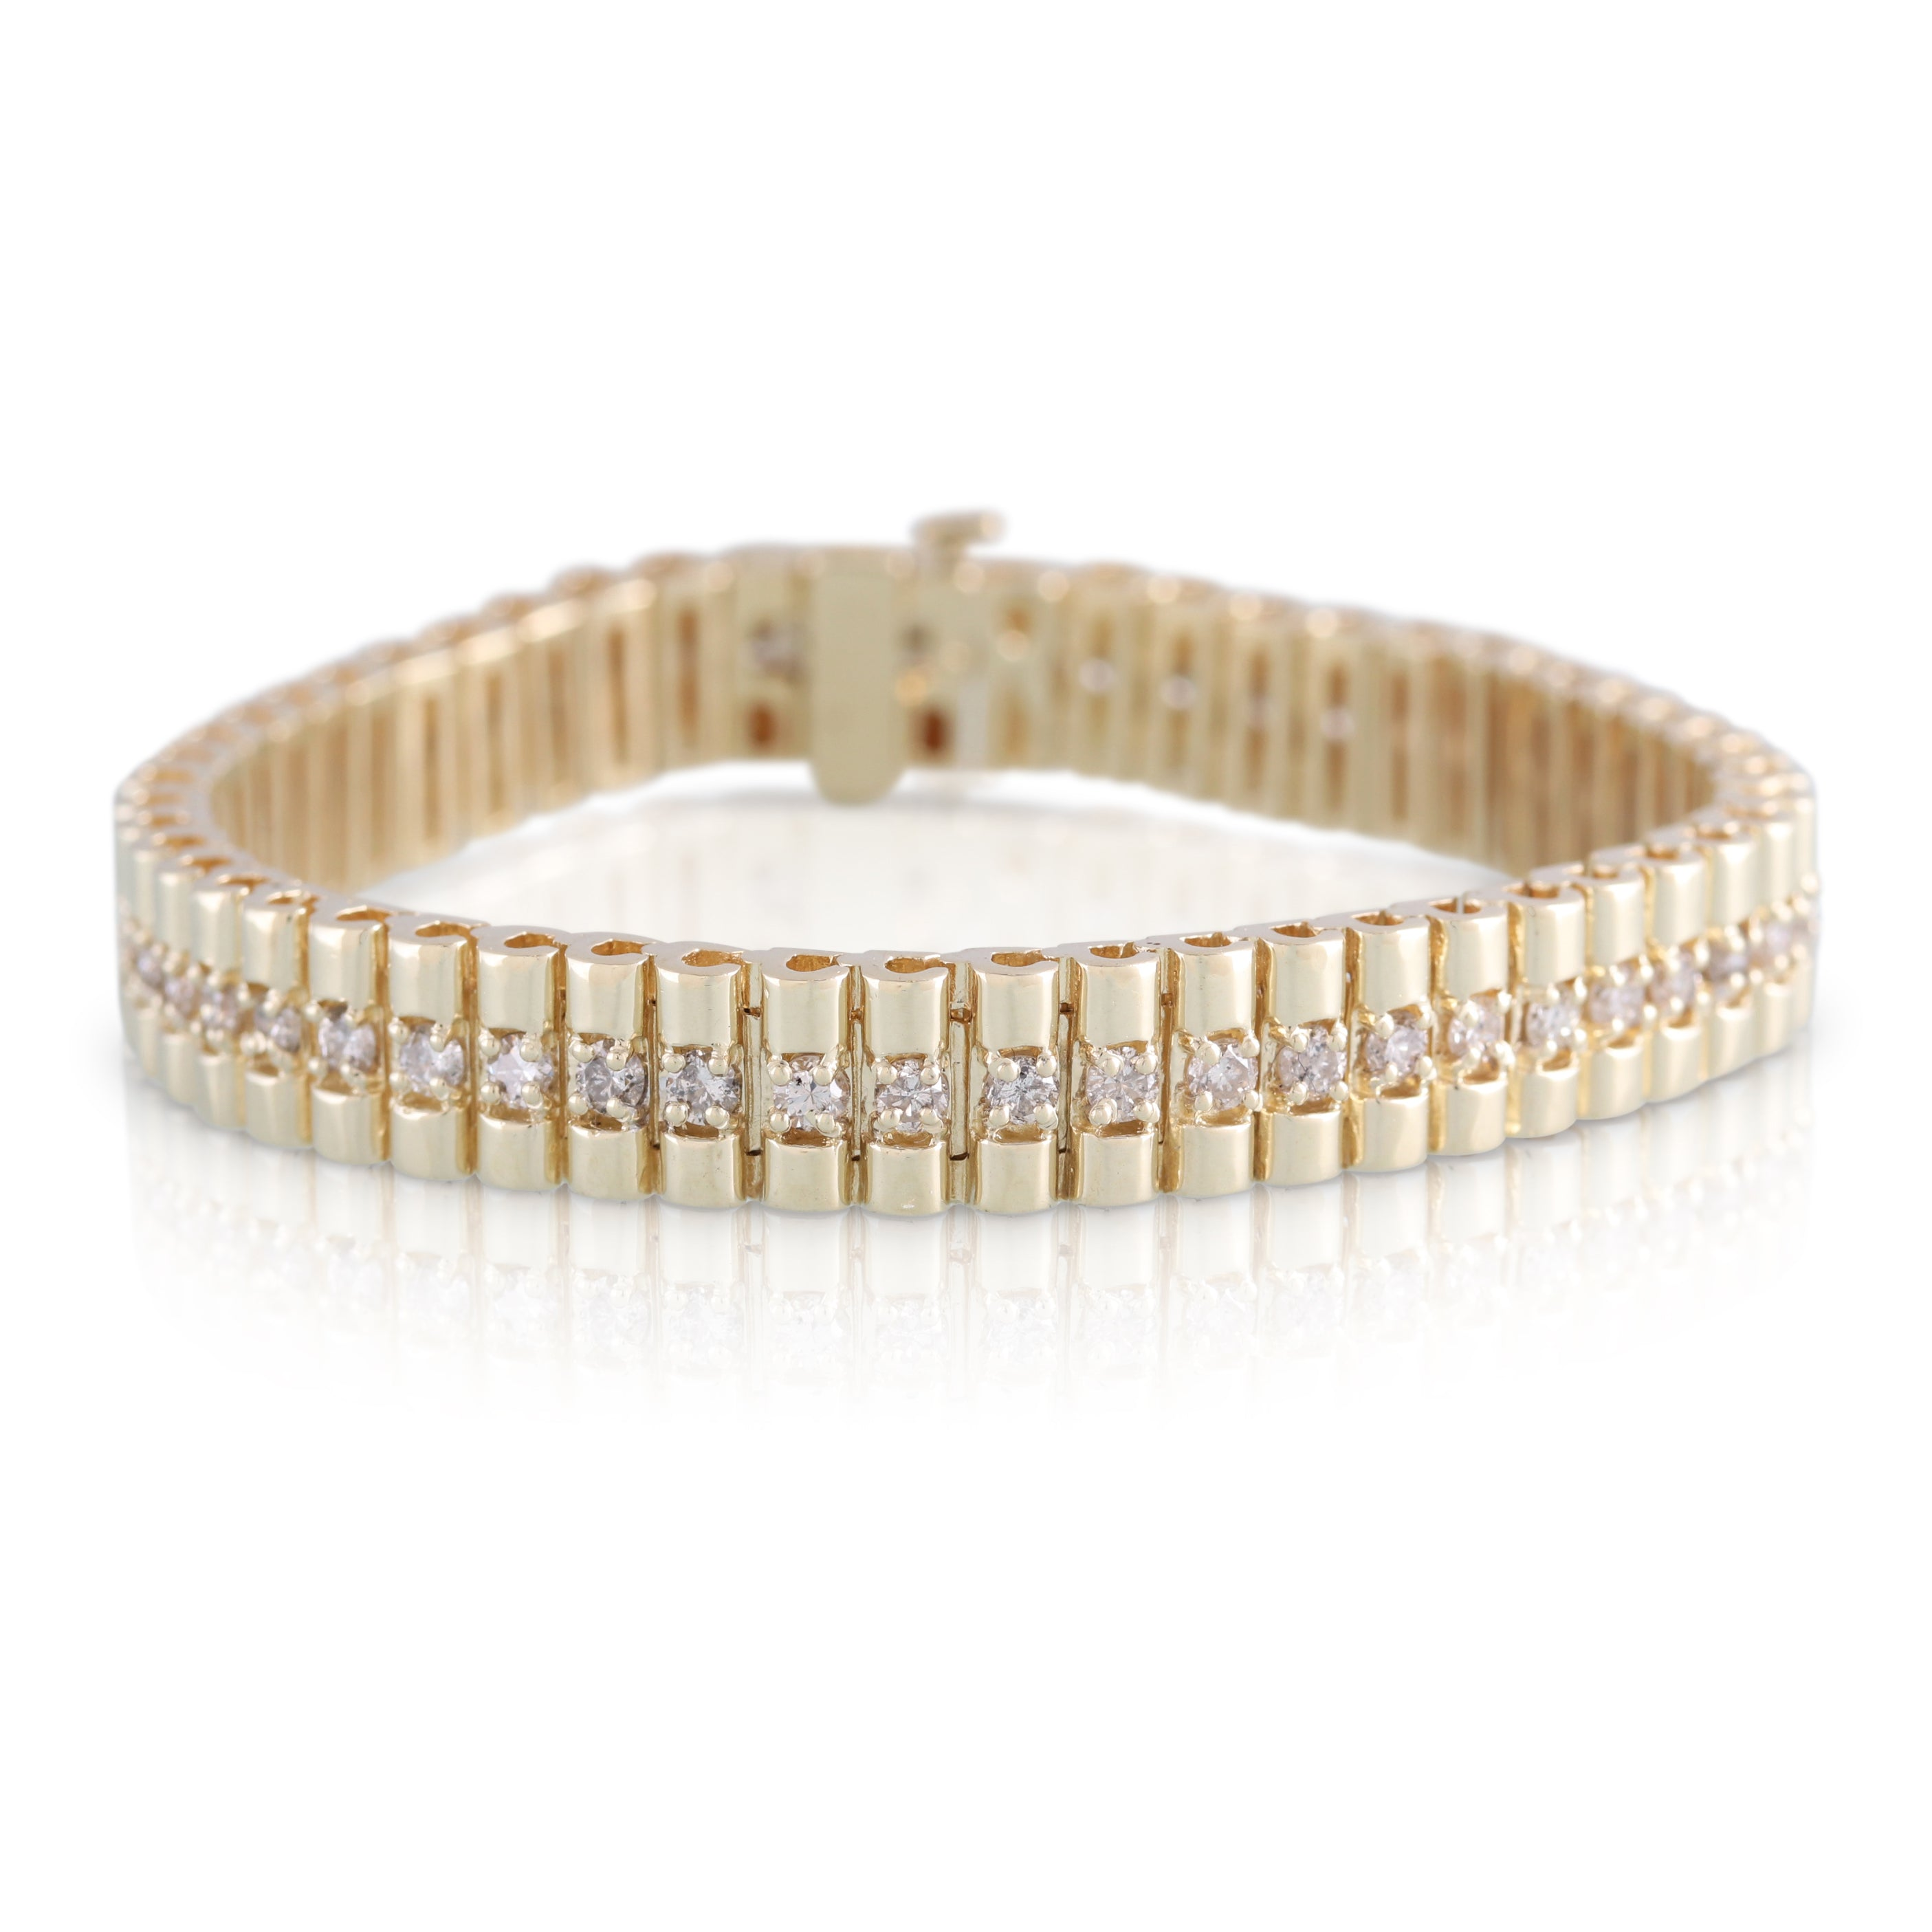 Diamond and Gold Link Bracelet | The Chester